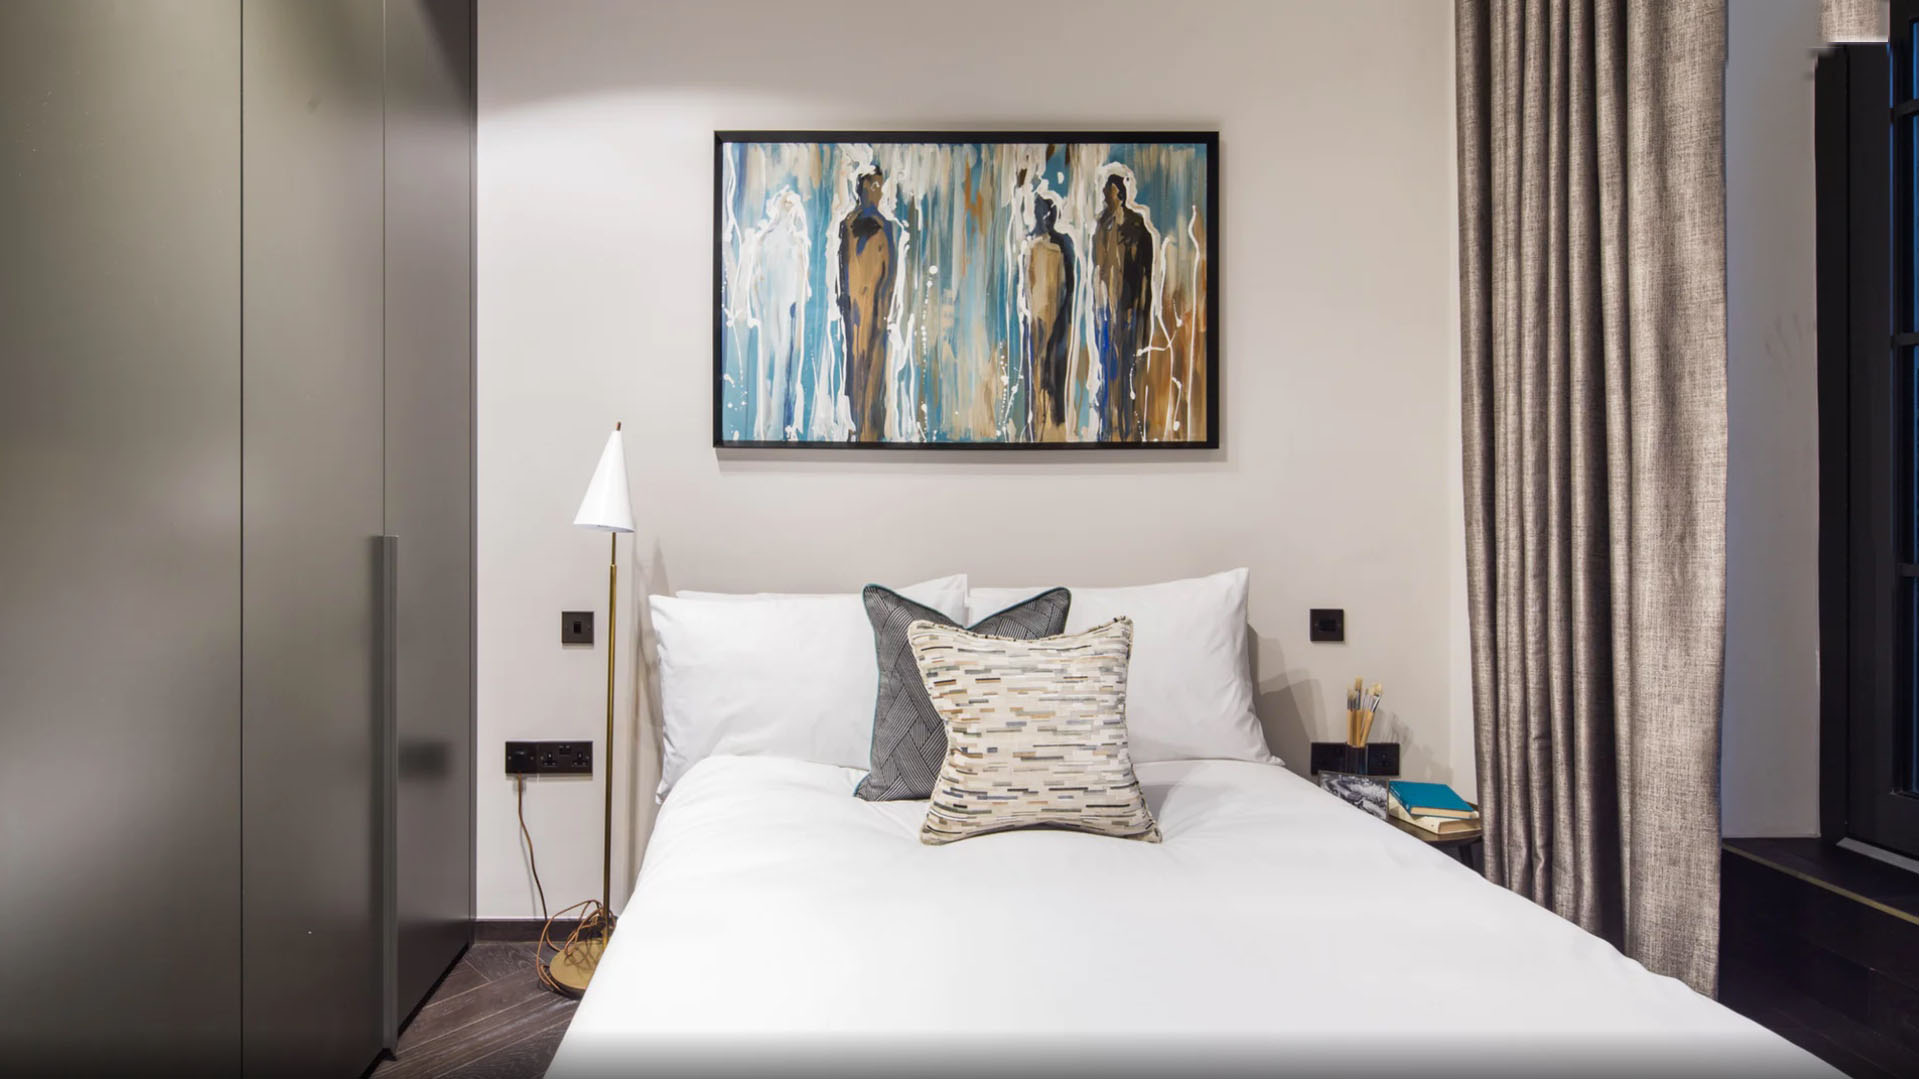 Lovelydays luxury service apartment rental - London - Soho - Berwick Street I - Lovelysuite - 3 bedrooms - 3 bathrooms - Double bed - cd0c54153be3 - Lovelydays